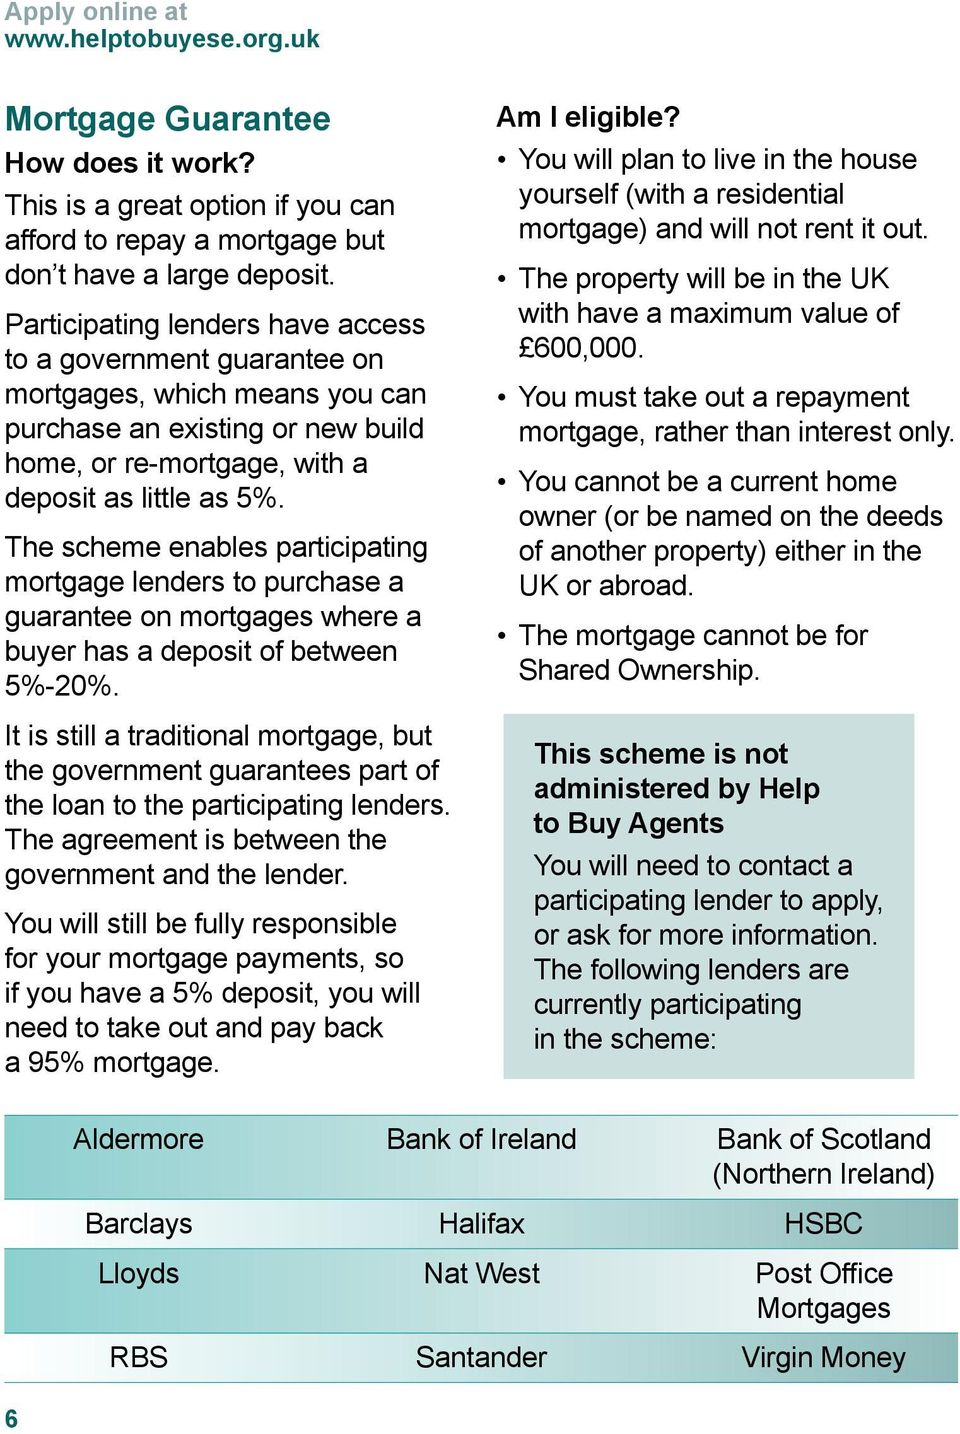 The scheme enables participating mortgage lenders to purchase a guarantee on mortgages where a buyer has a deposit of between 5%-20%.